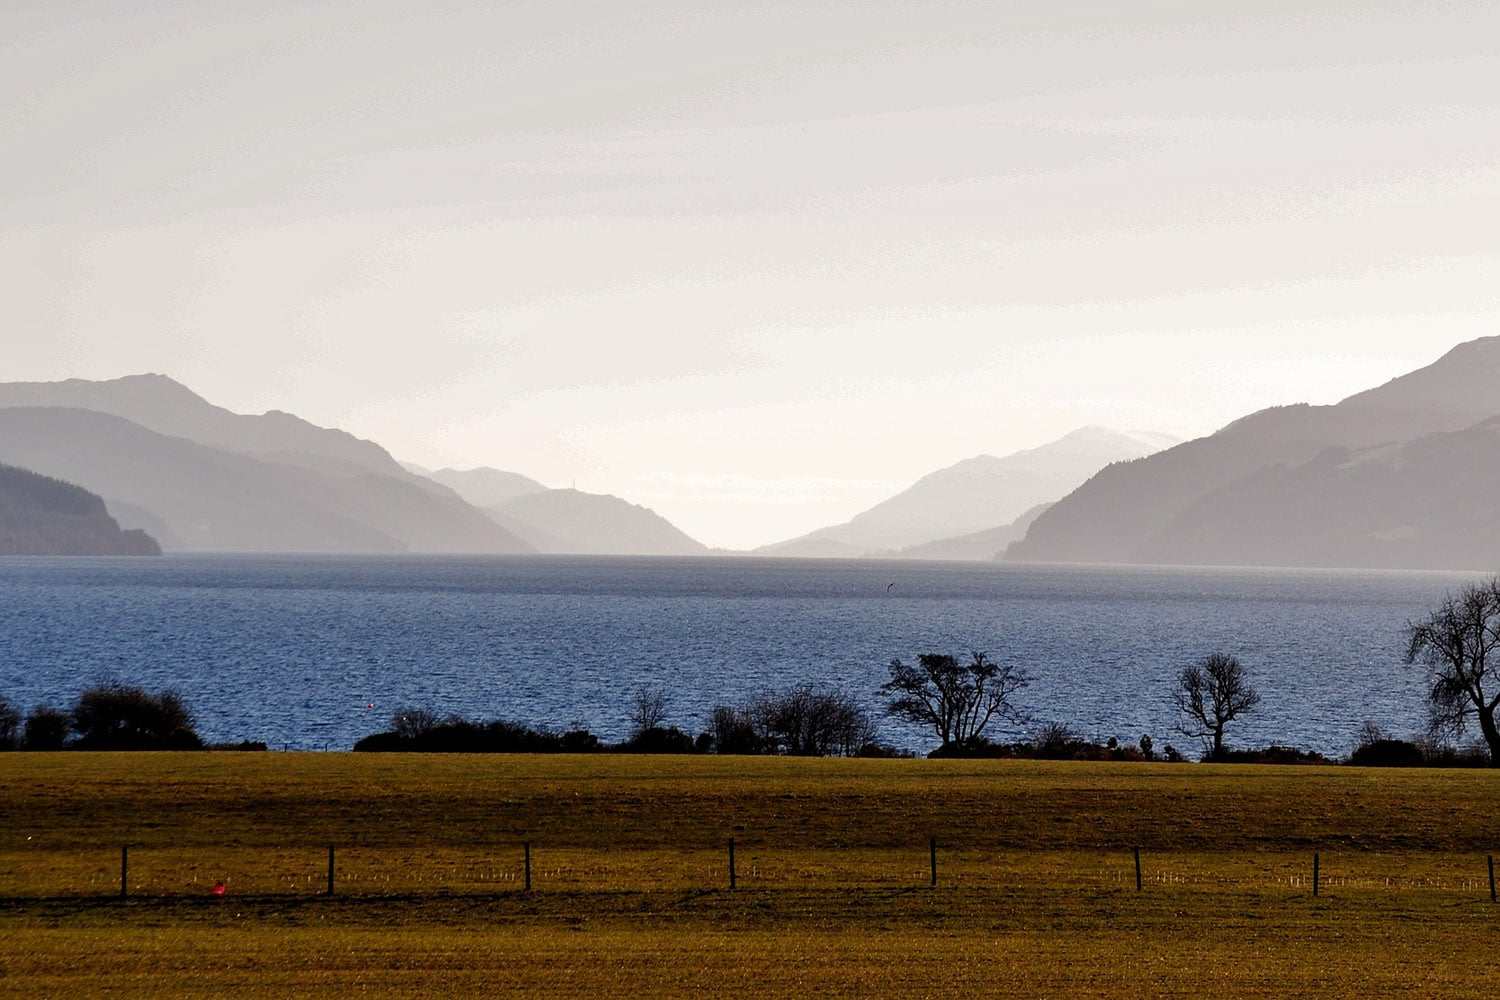 See the stunning views at Loch Ness on our Loch Ness Monster tour of Scotland